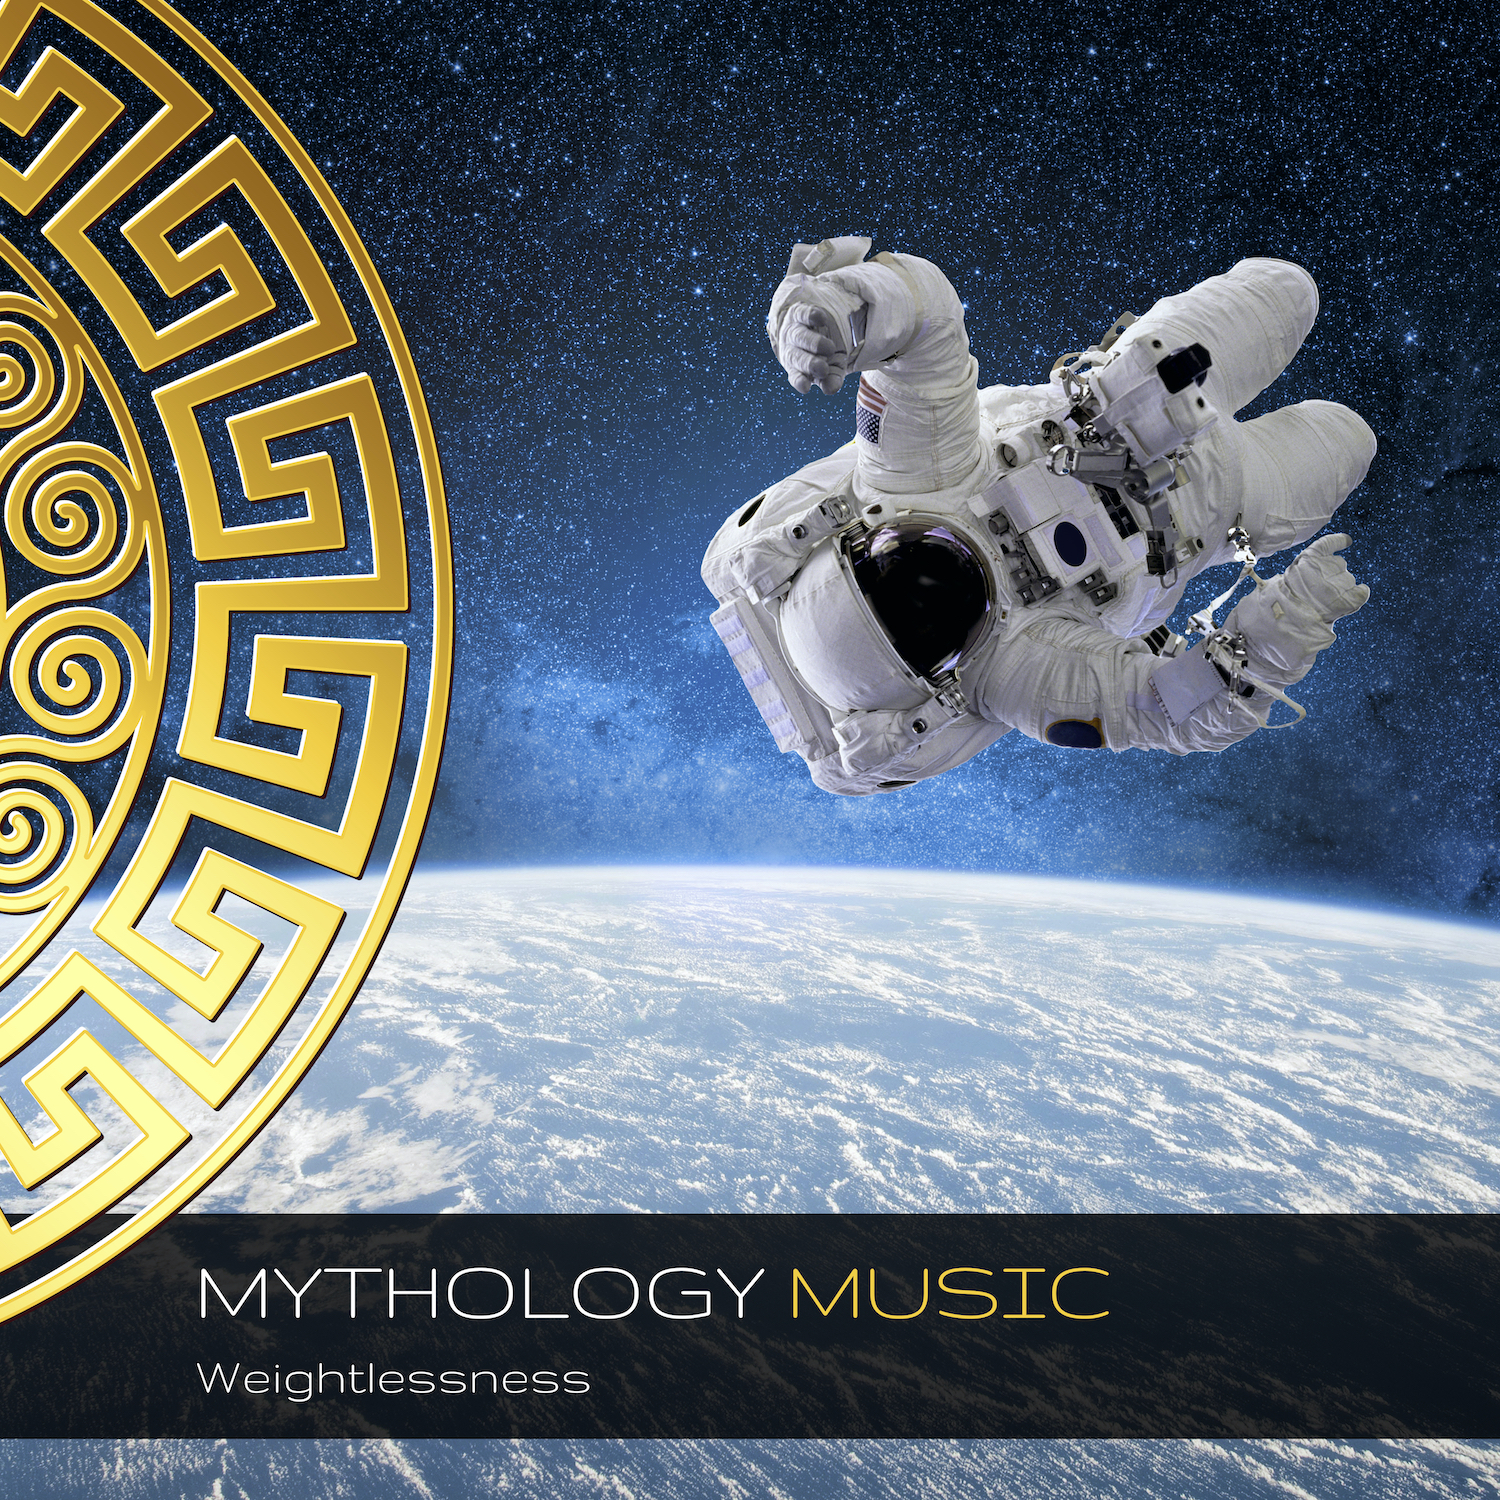 Mythology Music - Weightlessness